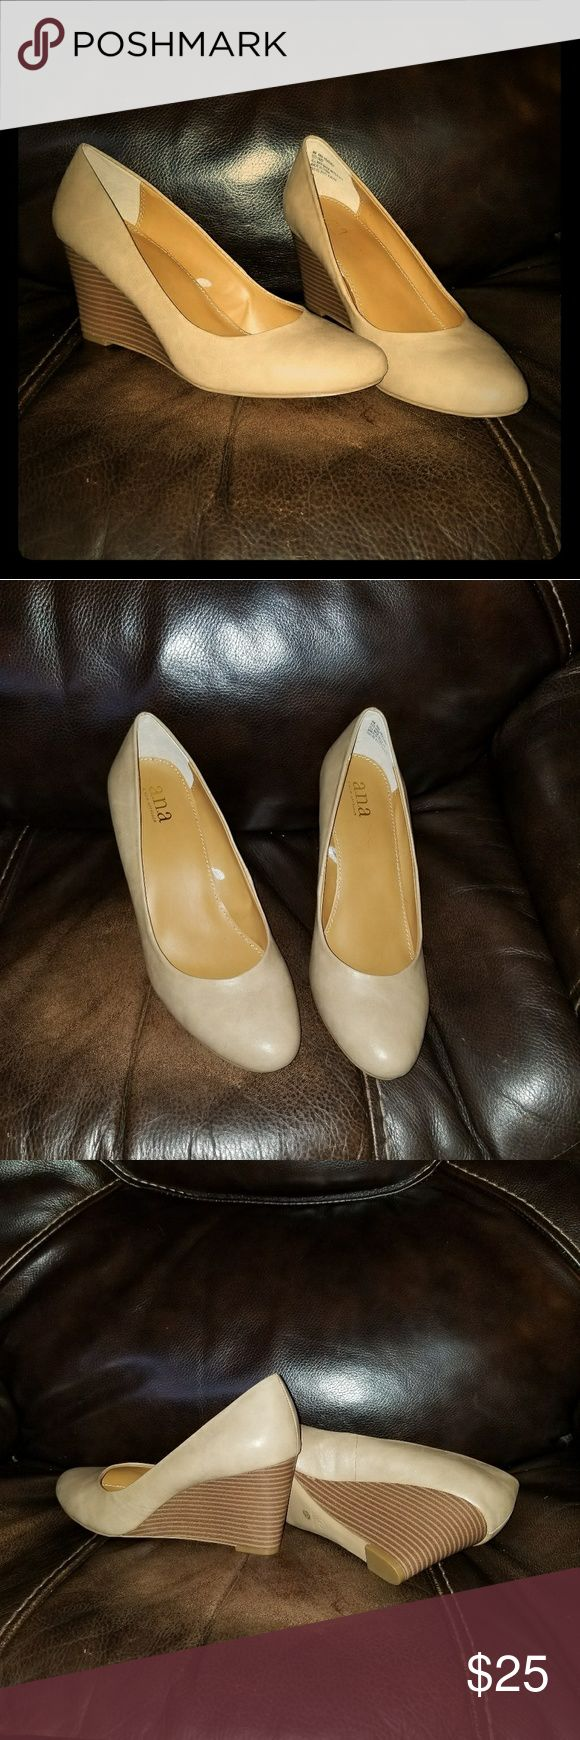 Nude pump wedges! New size 9 New and unworn! Only tried on and kept in the closet. Women's size 9. Beautiful nude pumps with a wedge! 3 1/2 inch heel. a.n.a Shoes Wedges